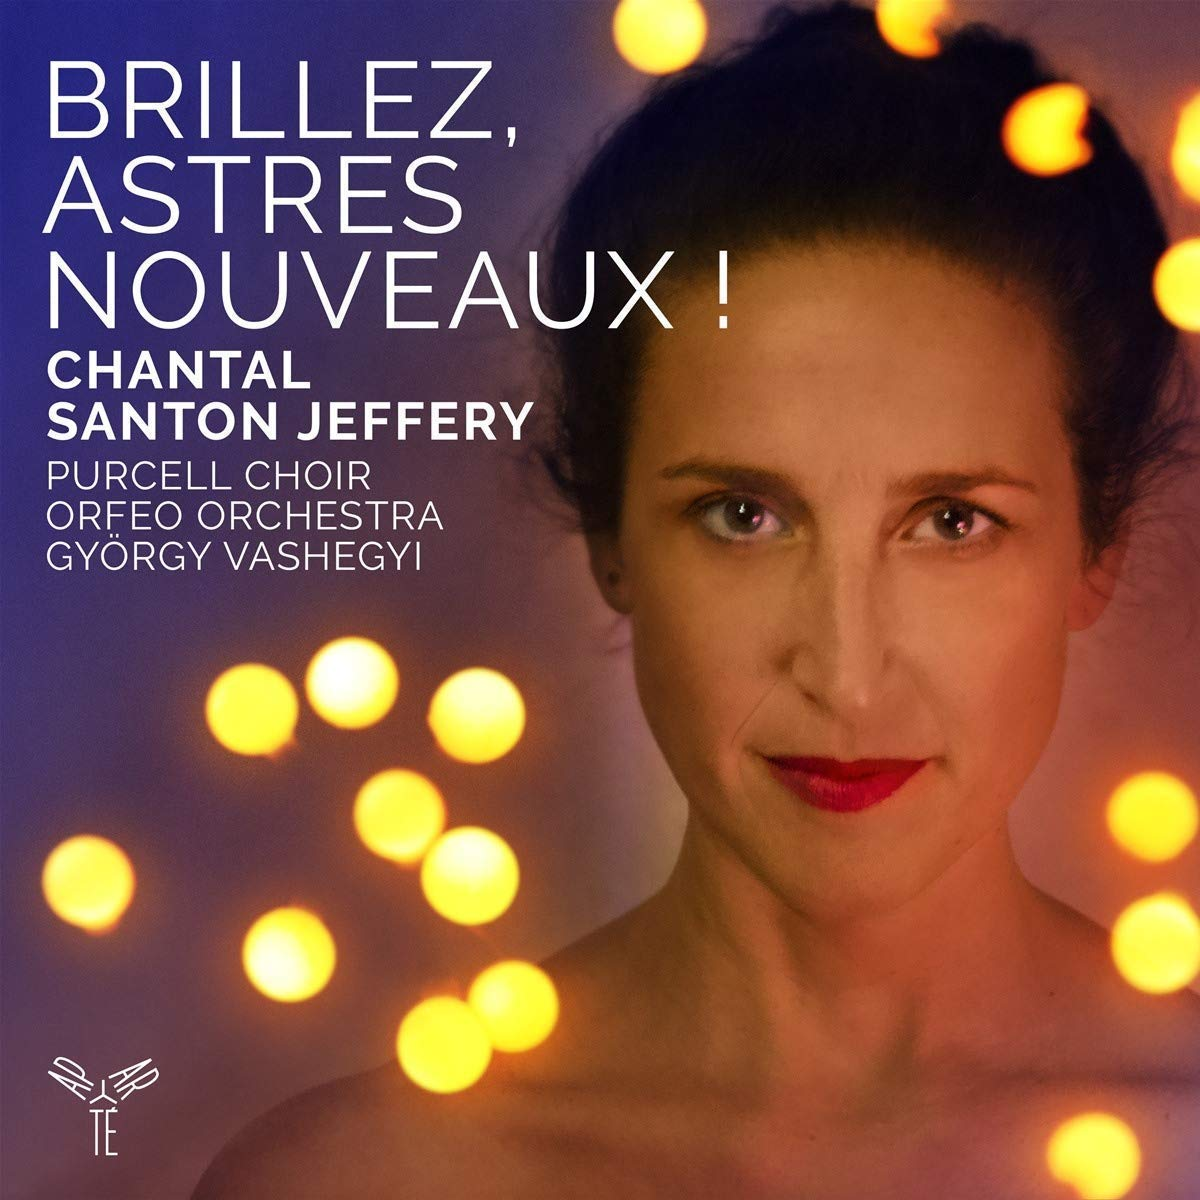 Review of Chantal Santon Jeffery: Brillez, astres nouveaux!